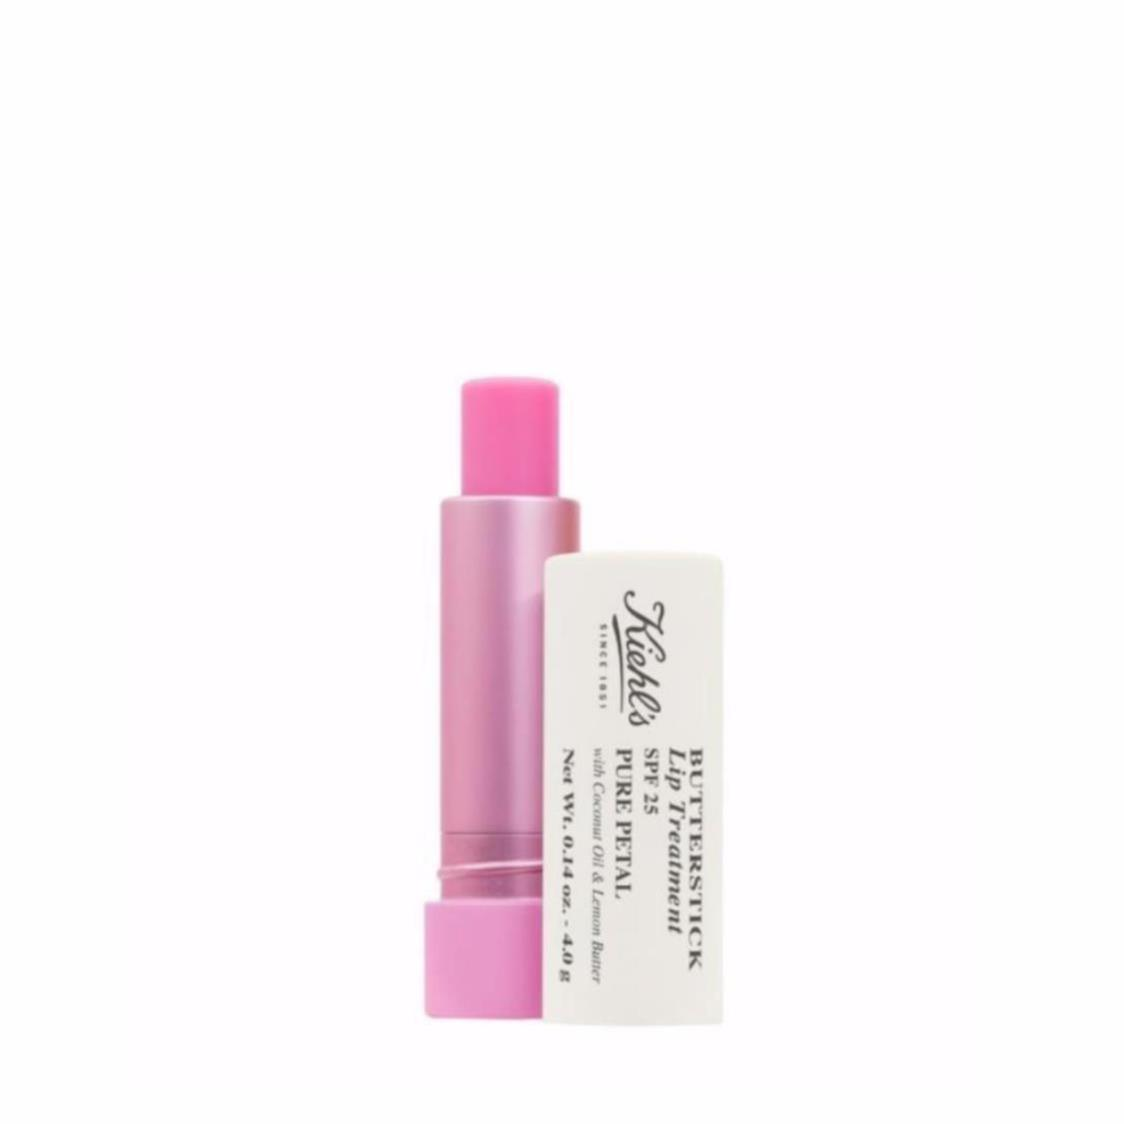 Butterstick Lip Treatment SPF25 in Pure Petal